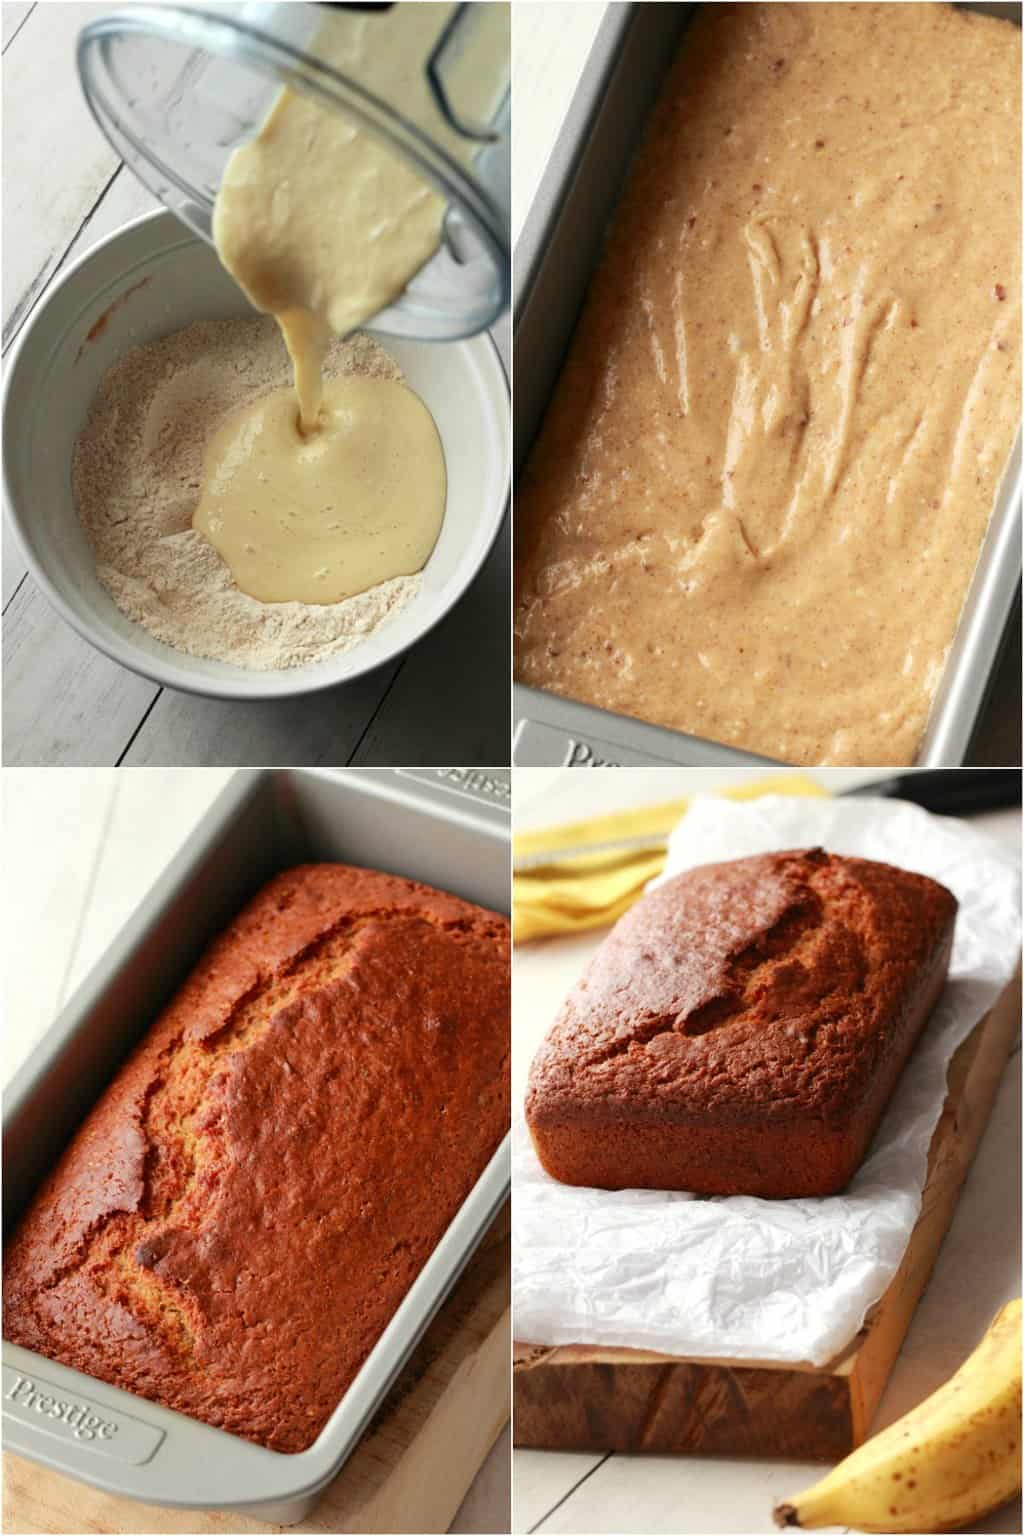 Step by step process photo collage of making vegan banana bread.